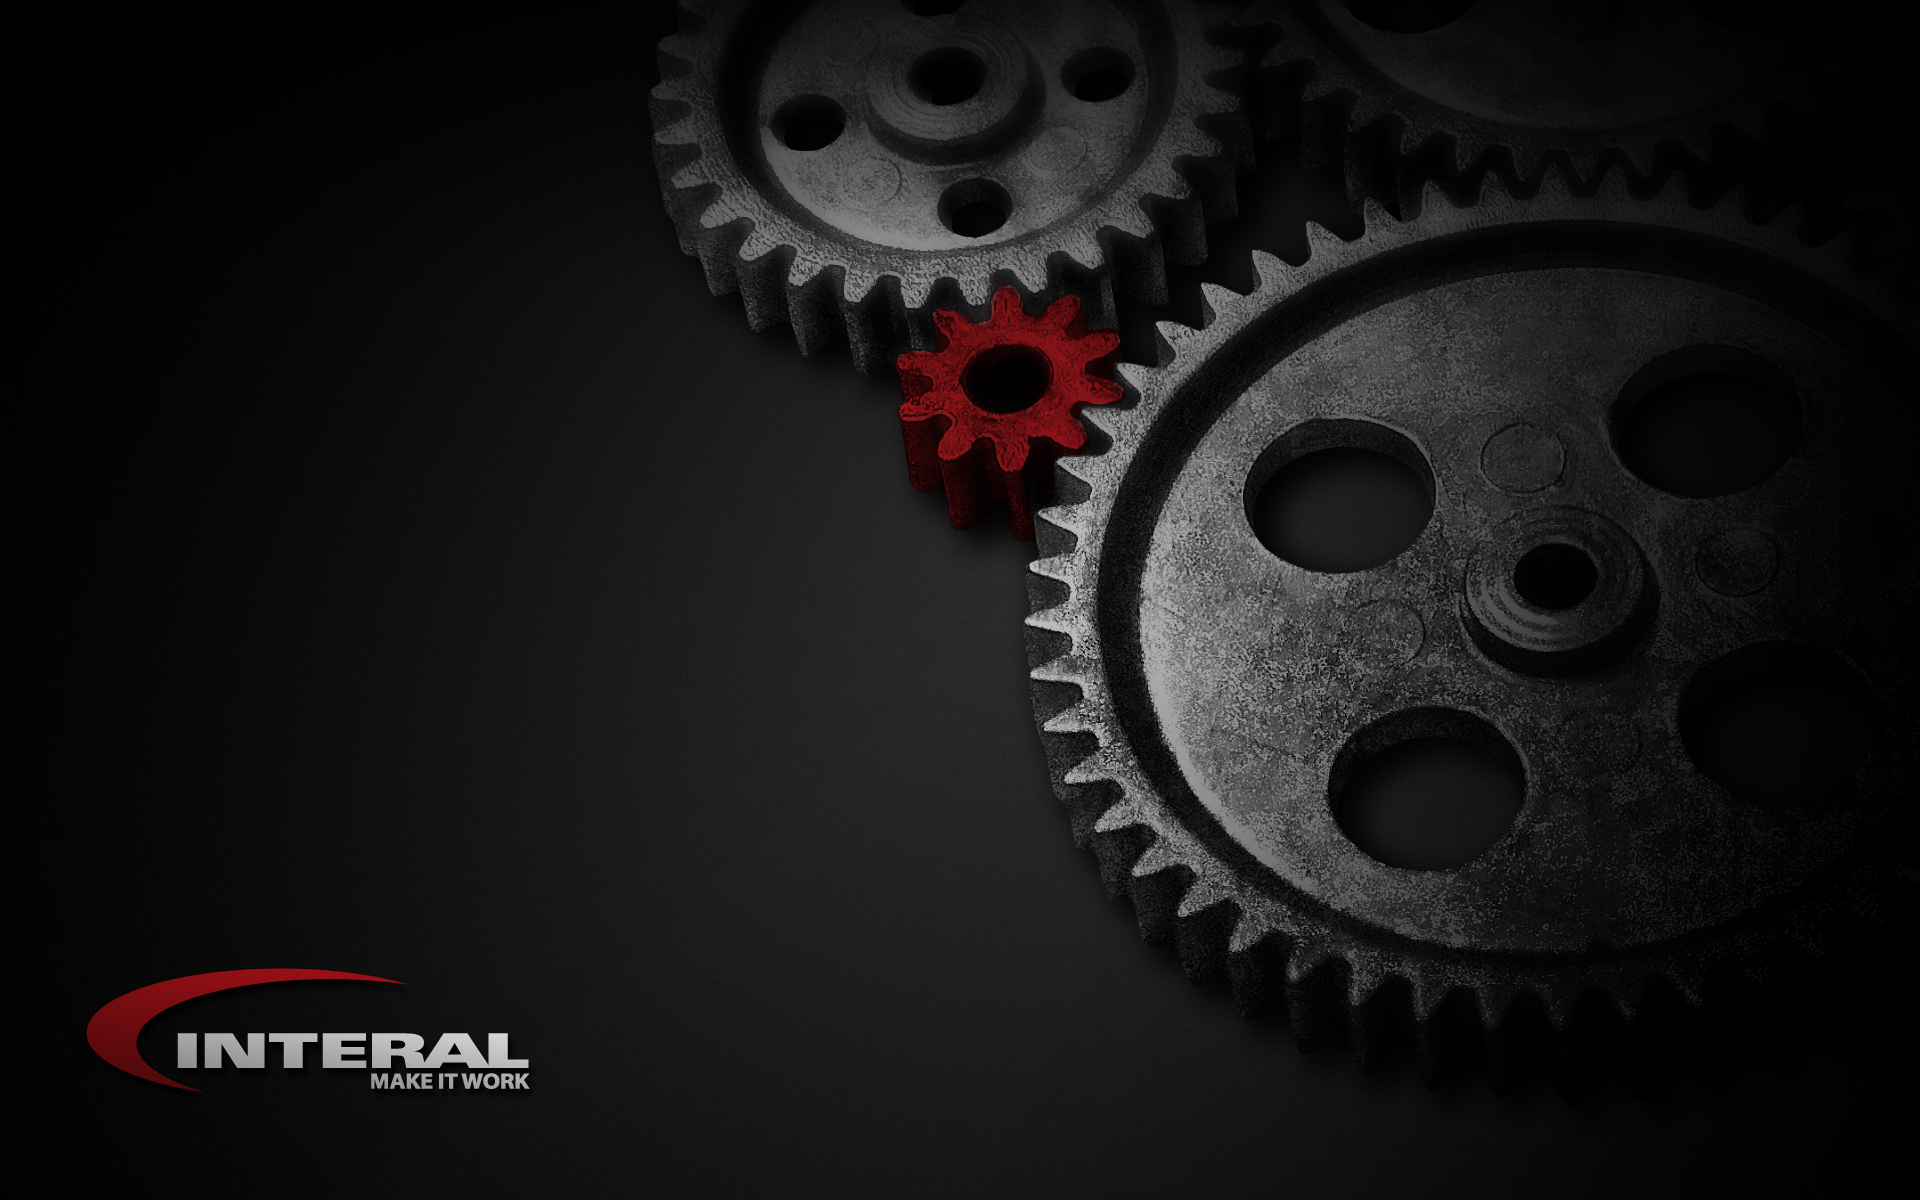 Gears wallpapers  Gears stock photos 1920x1200